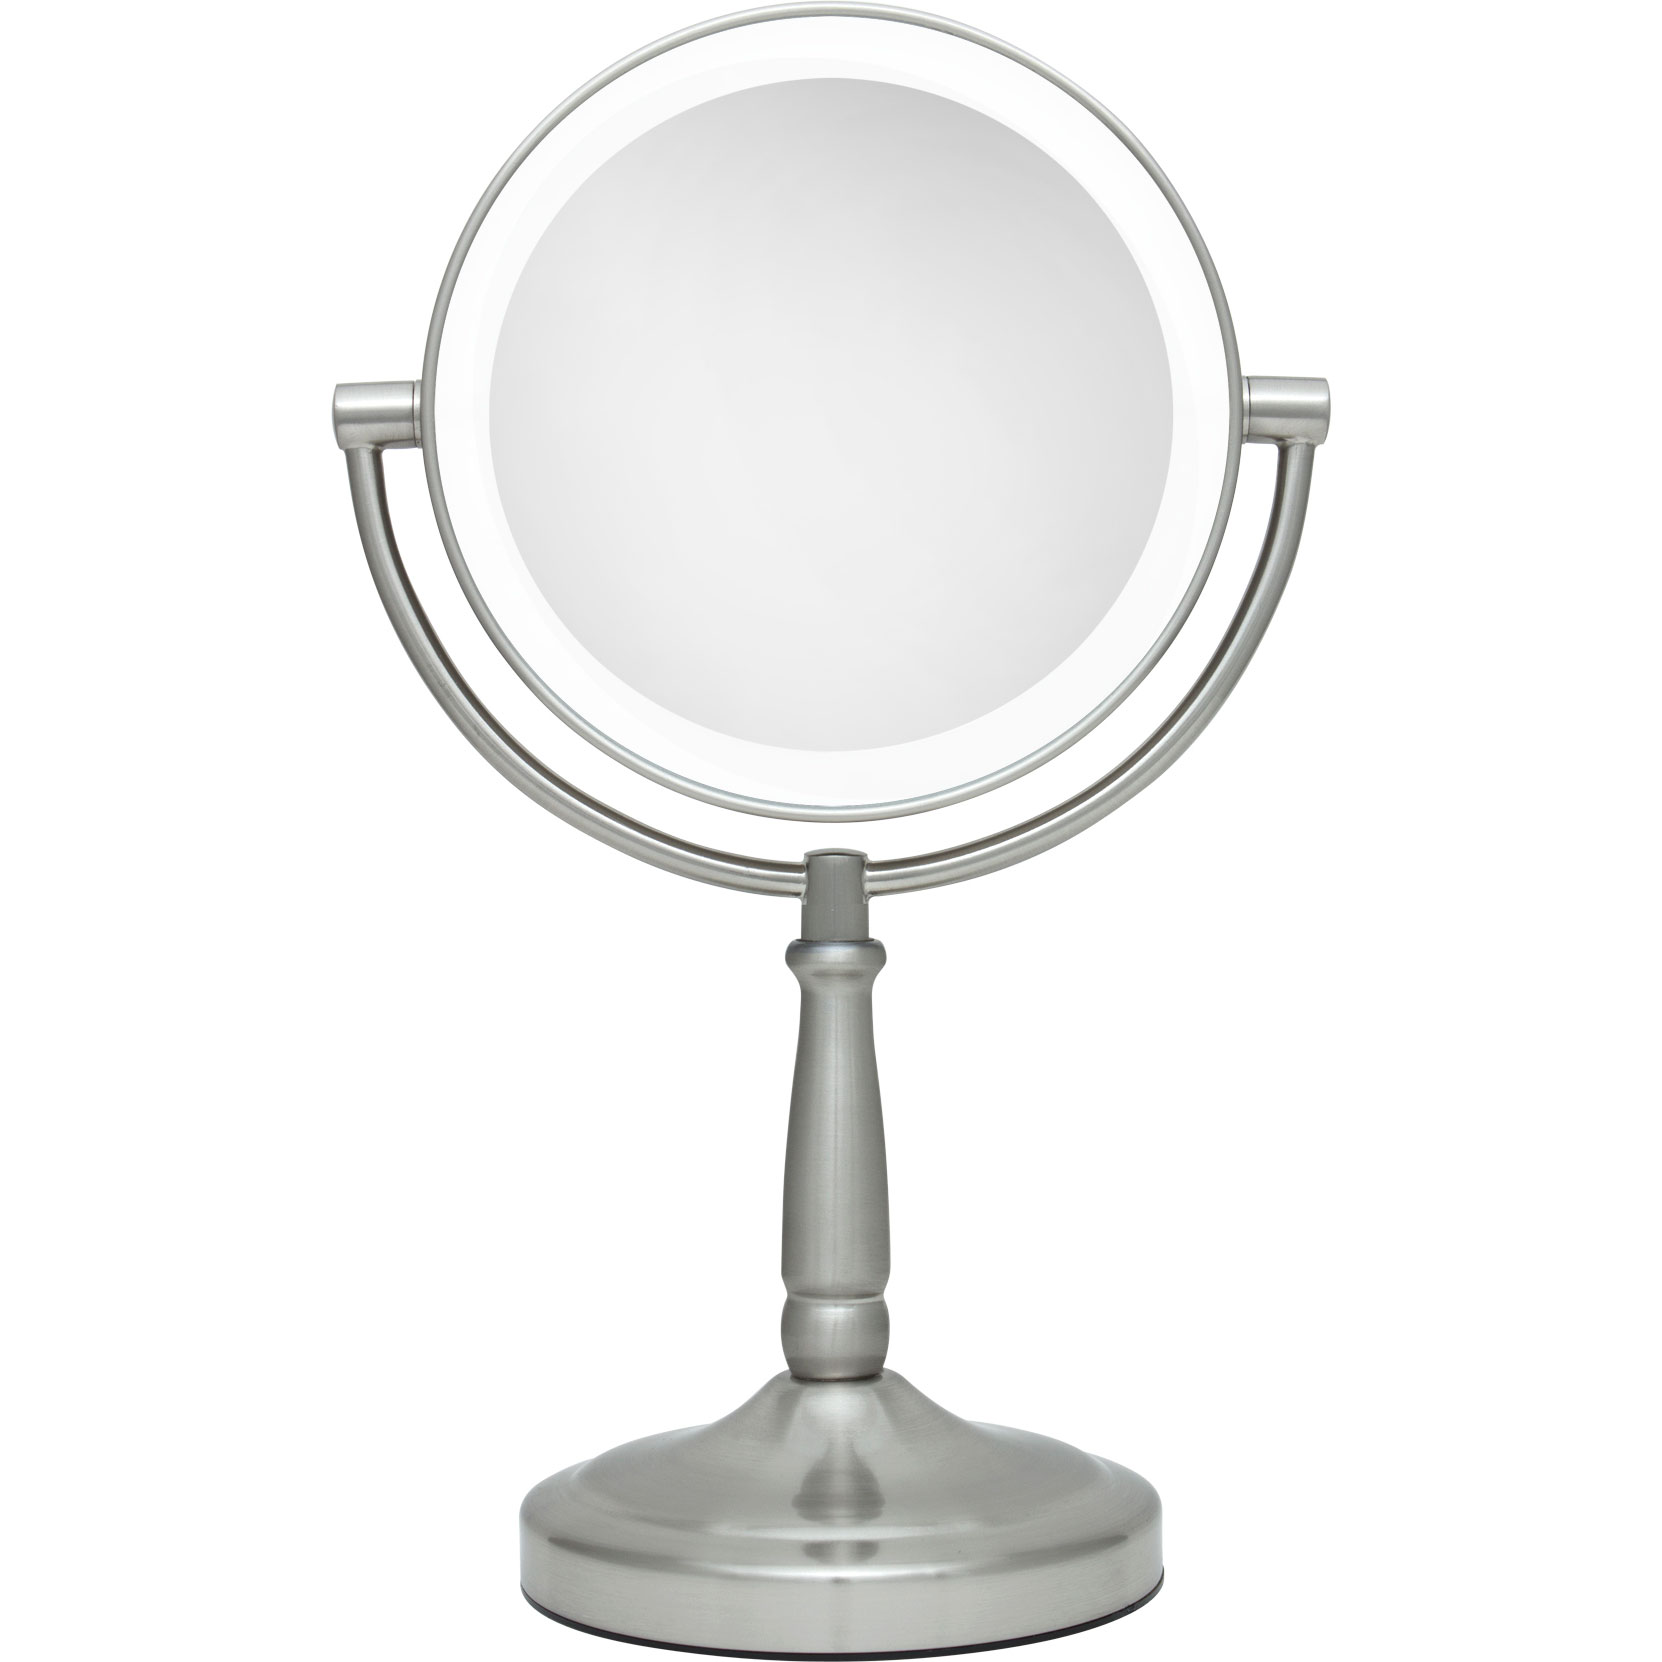 5x 1x cordless dual sided led light vanity mirror by zadro ledv45